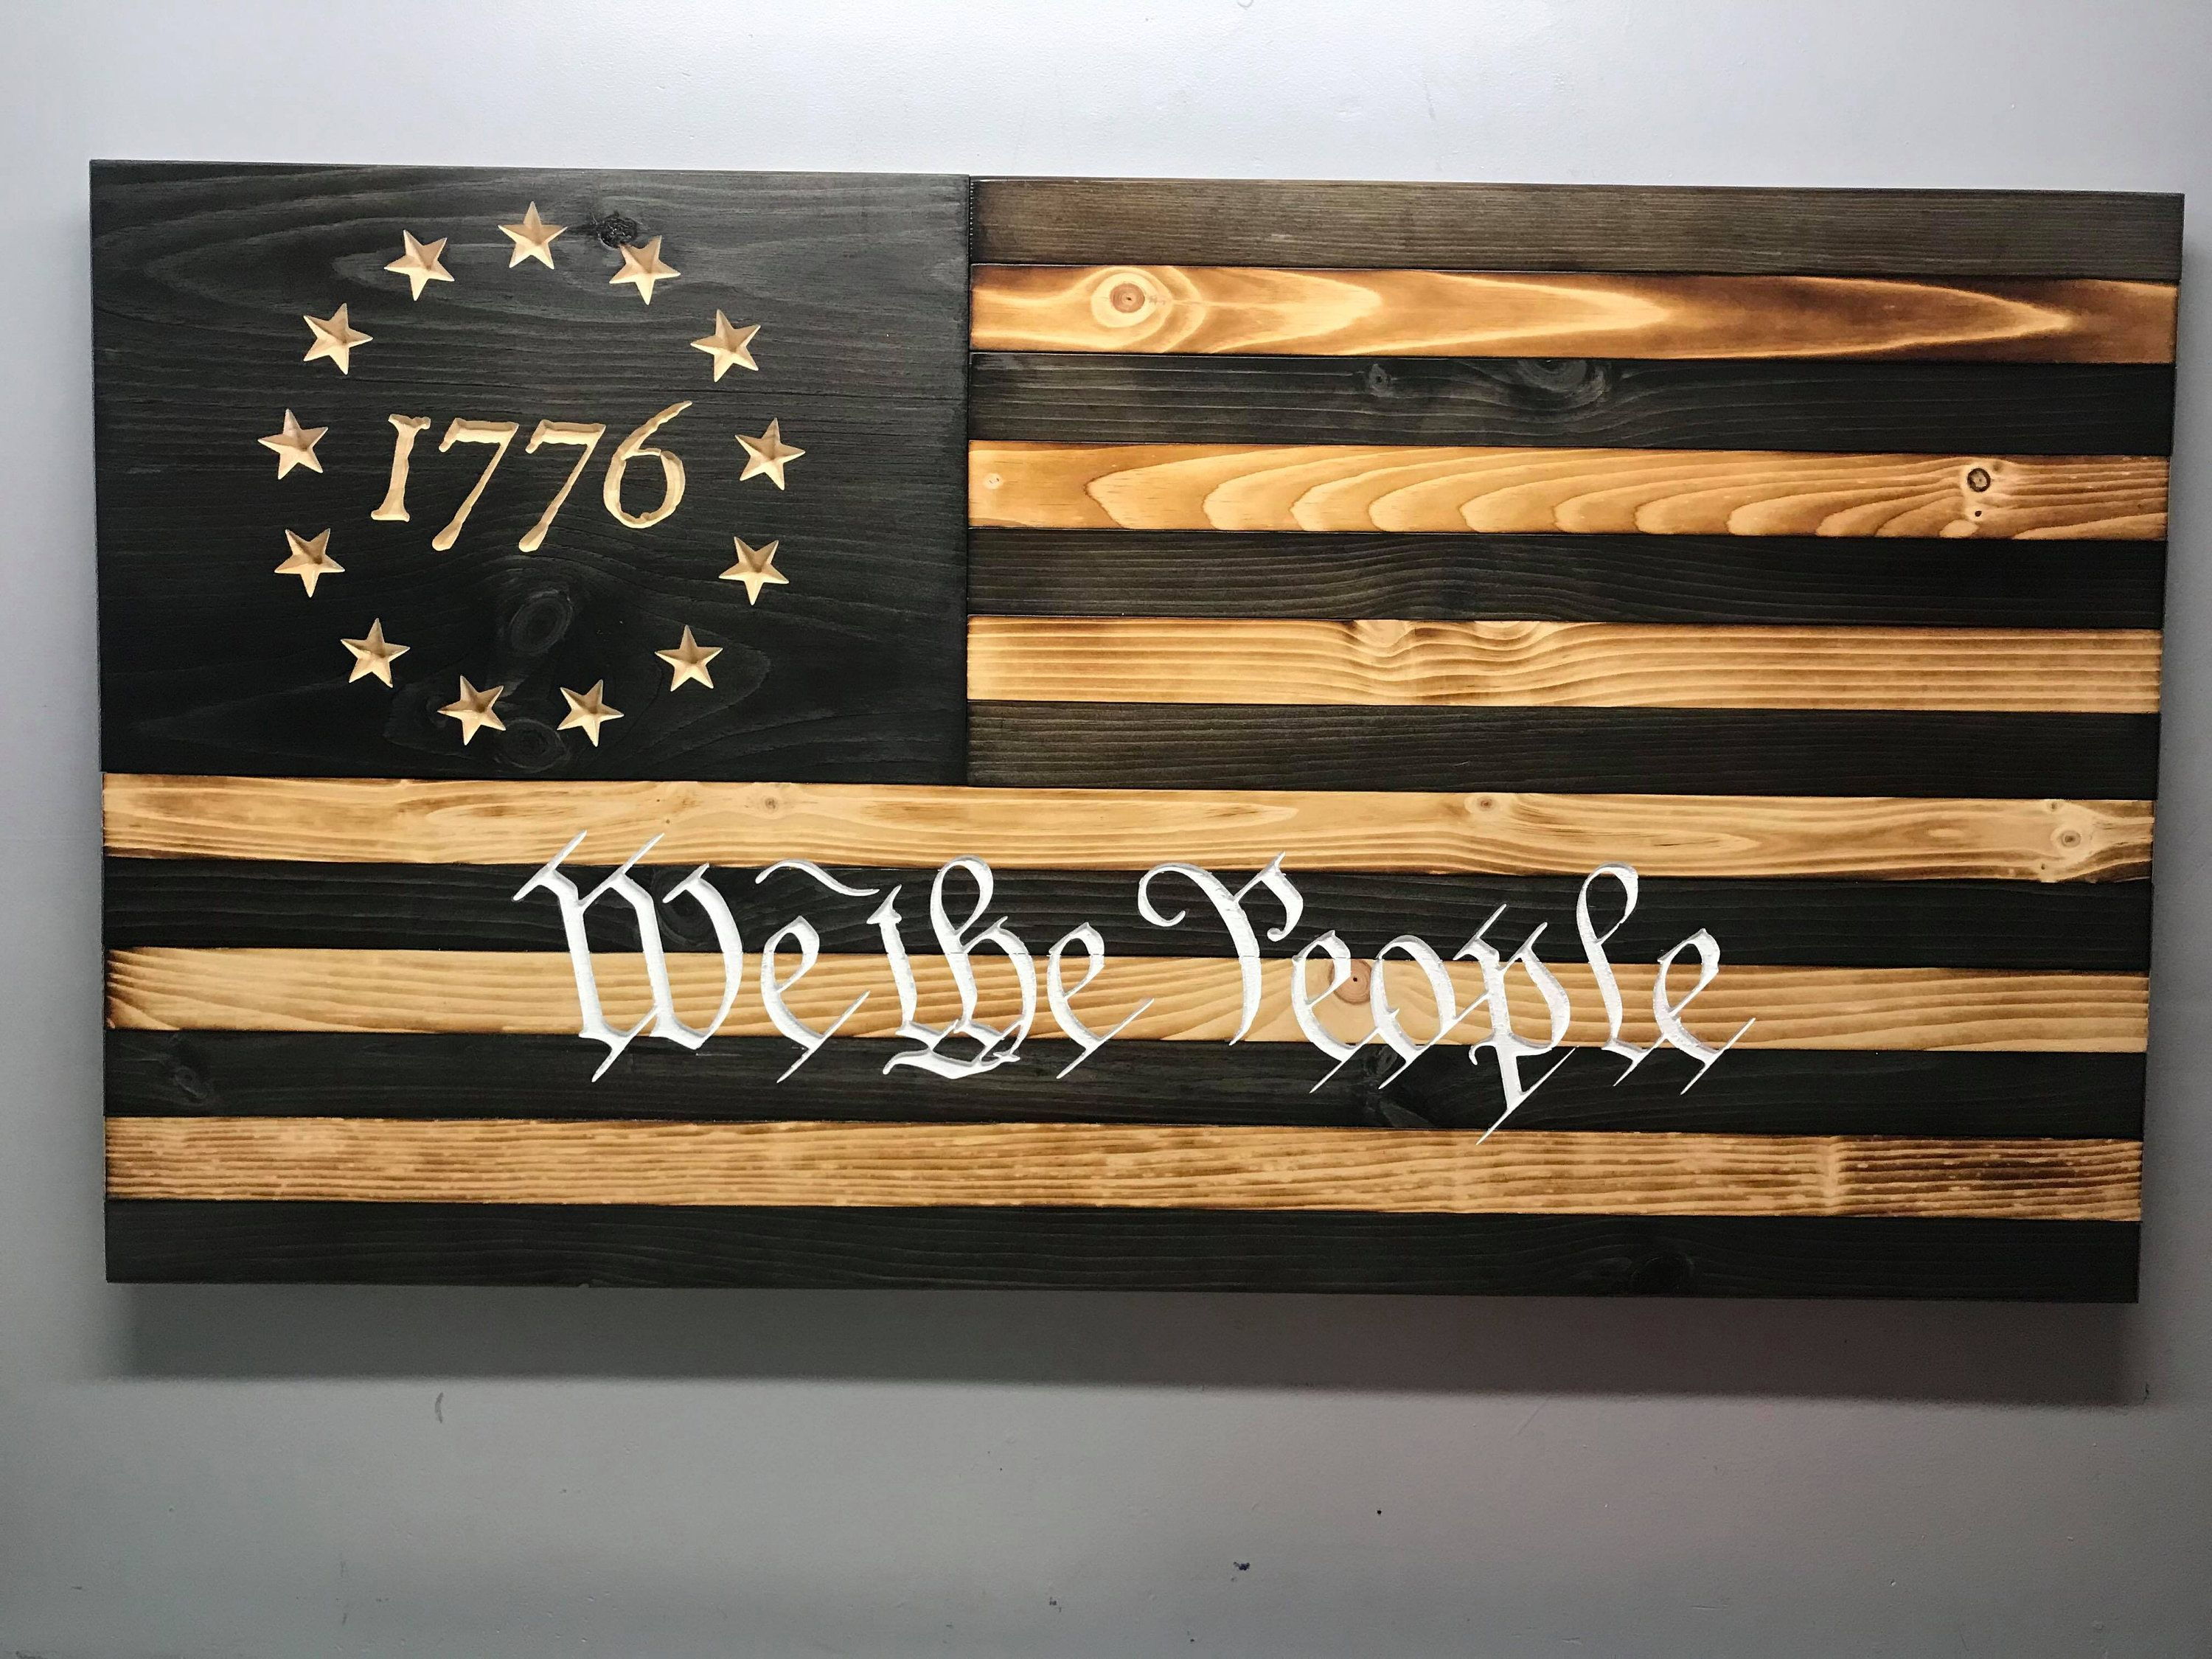 Betsy ross 1776 we the people subdued wooden flag